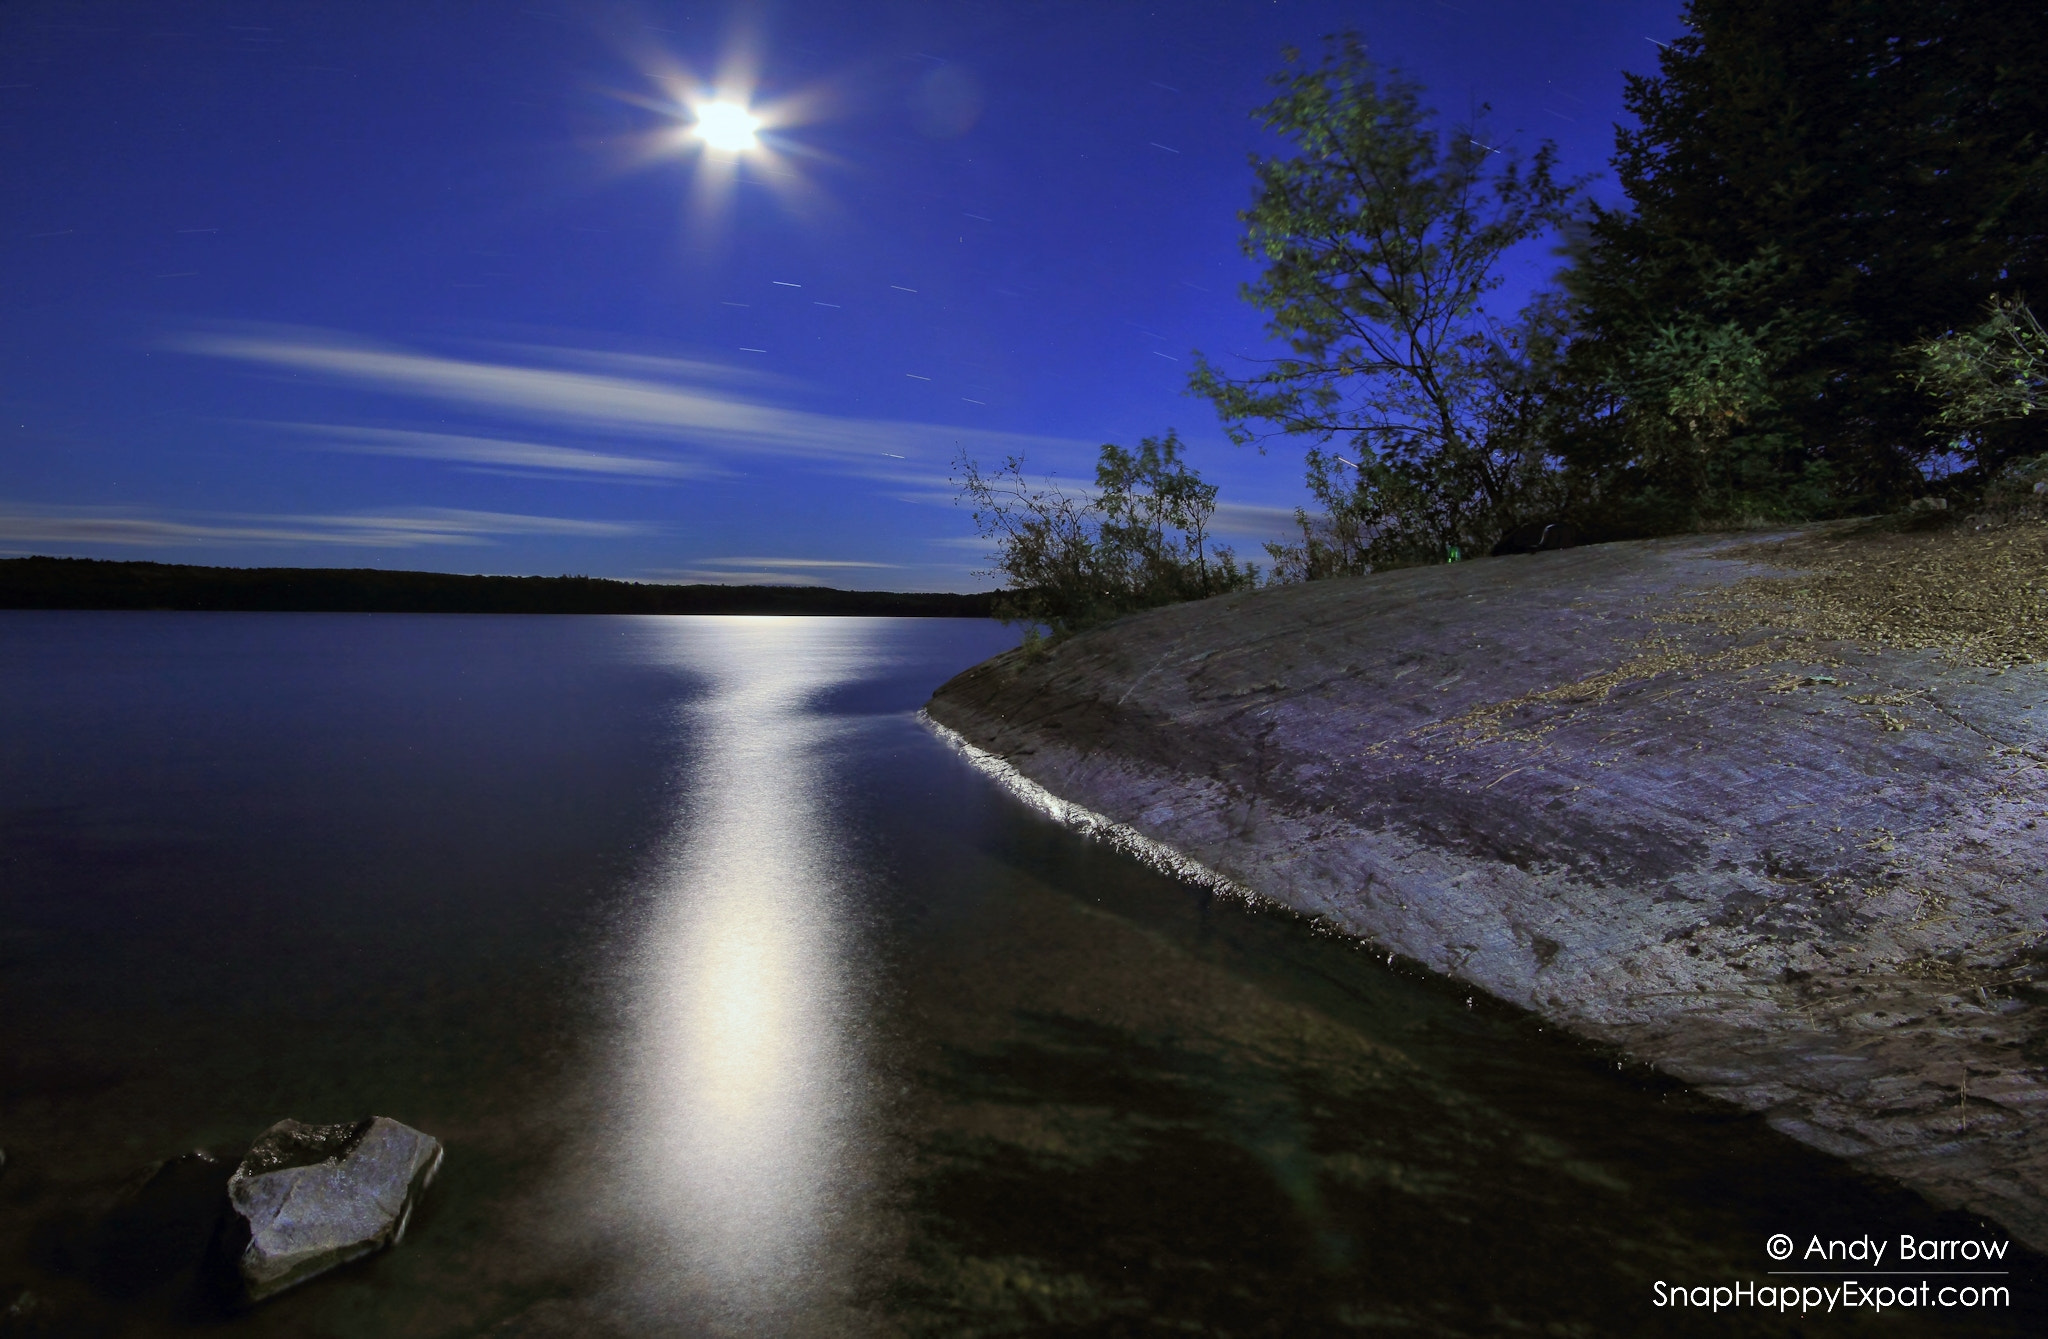 Photograph Moonset over the Lake by Andy Barrow (SnapHappyExpat) on 500px